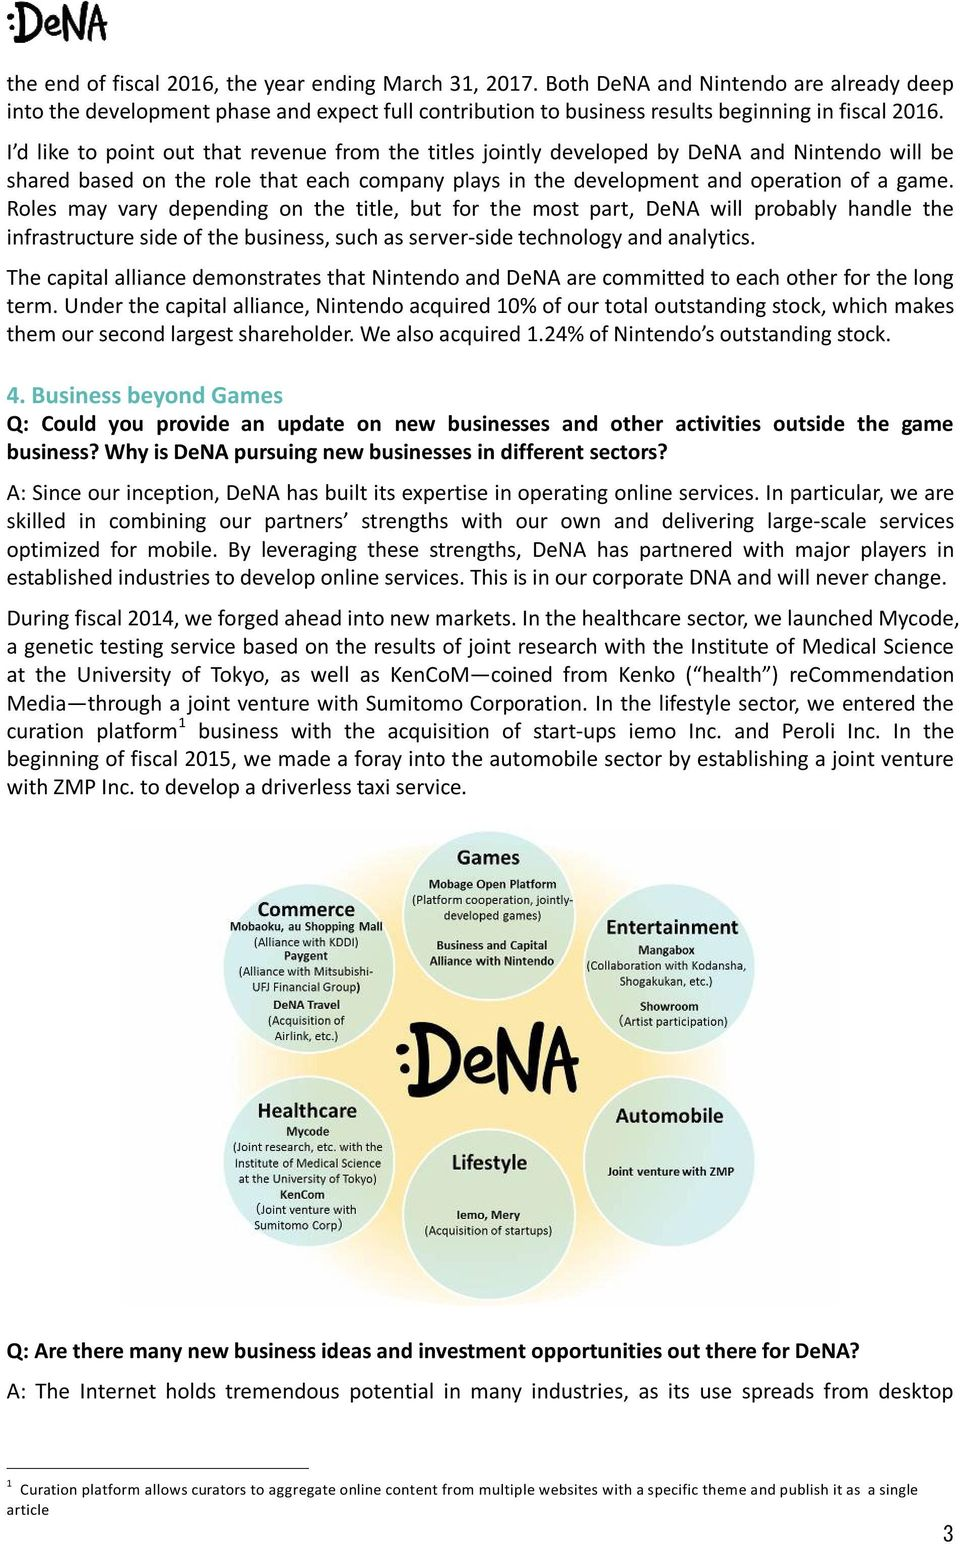 Roles may vary depending on the title, but for the most part, DeNA will probably handle the infrastructure side of the business, such as server-side technology and analytics.